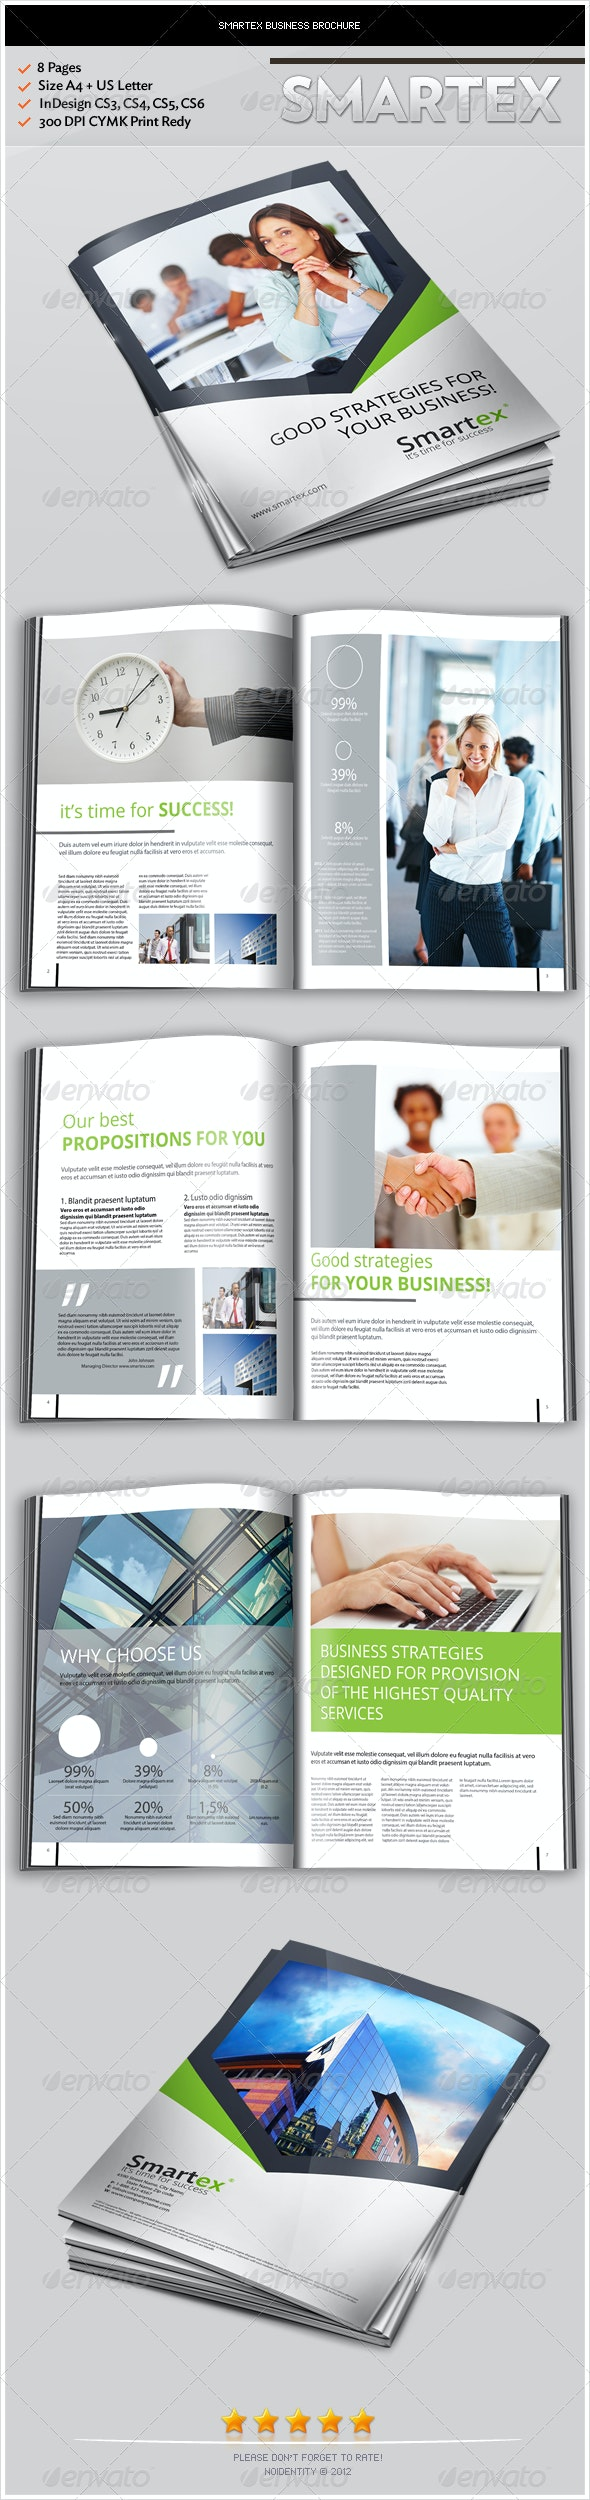 Smartex Business Brochure - Corporate Brochures